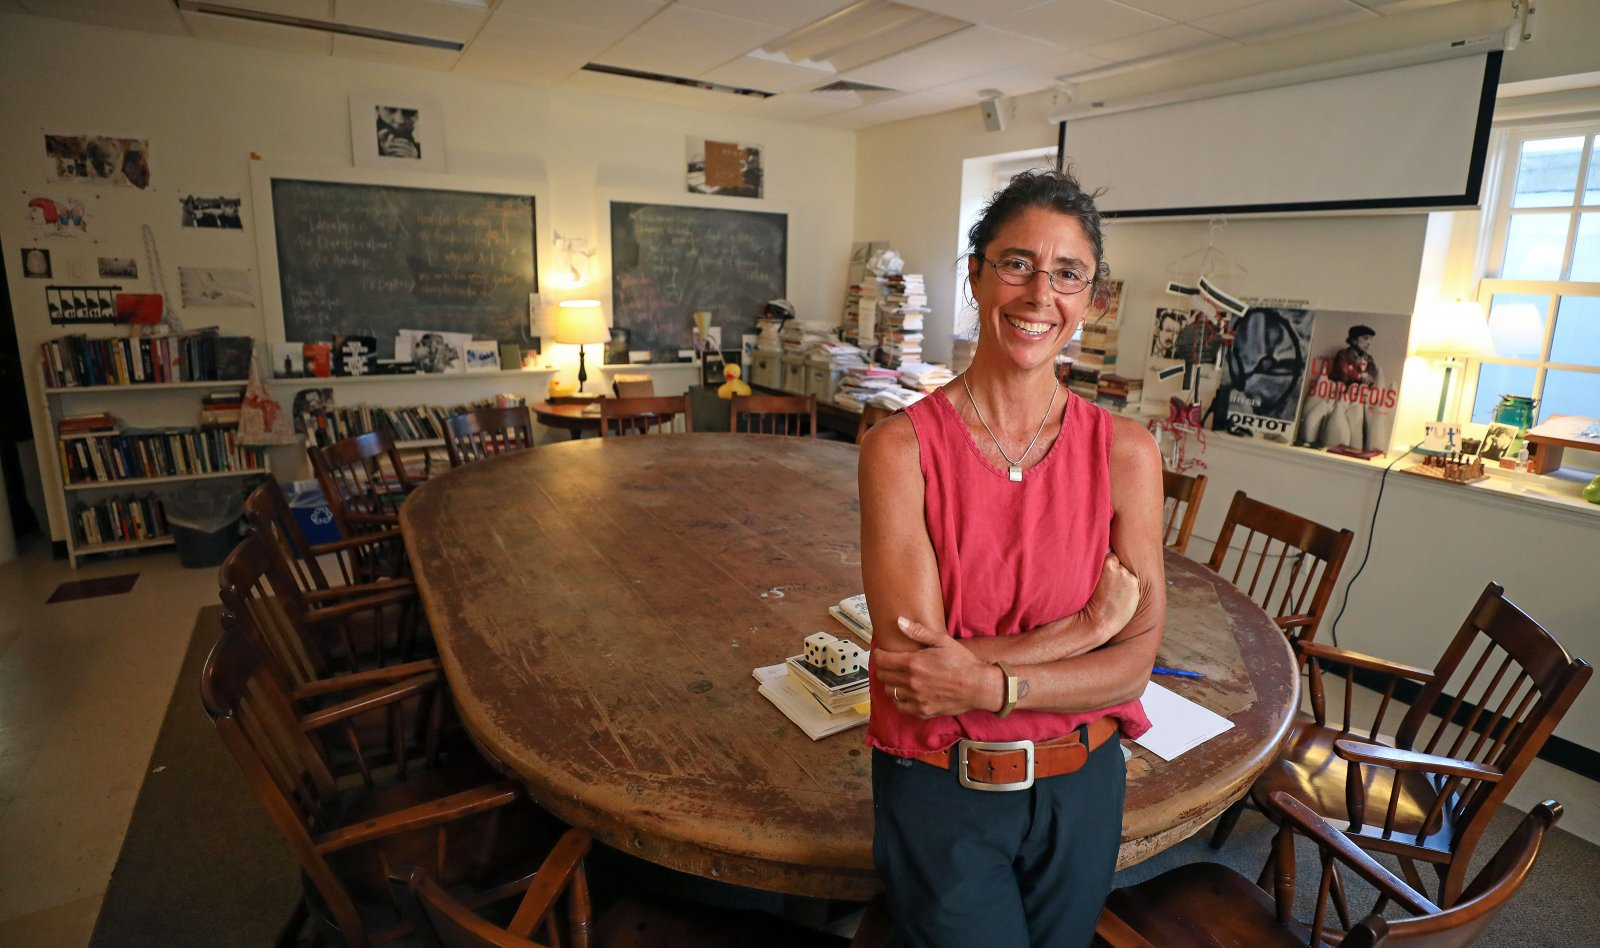 Mercy Carbonell in her classroom at Phillips Exeter Academy.